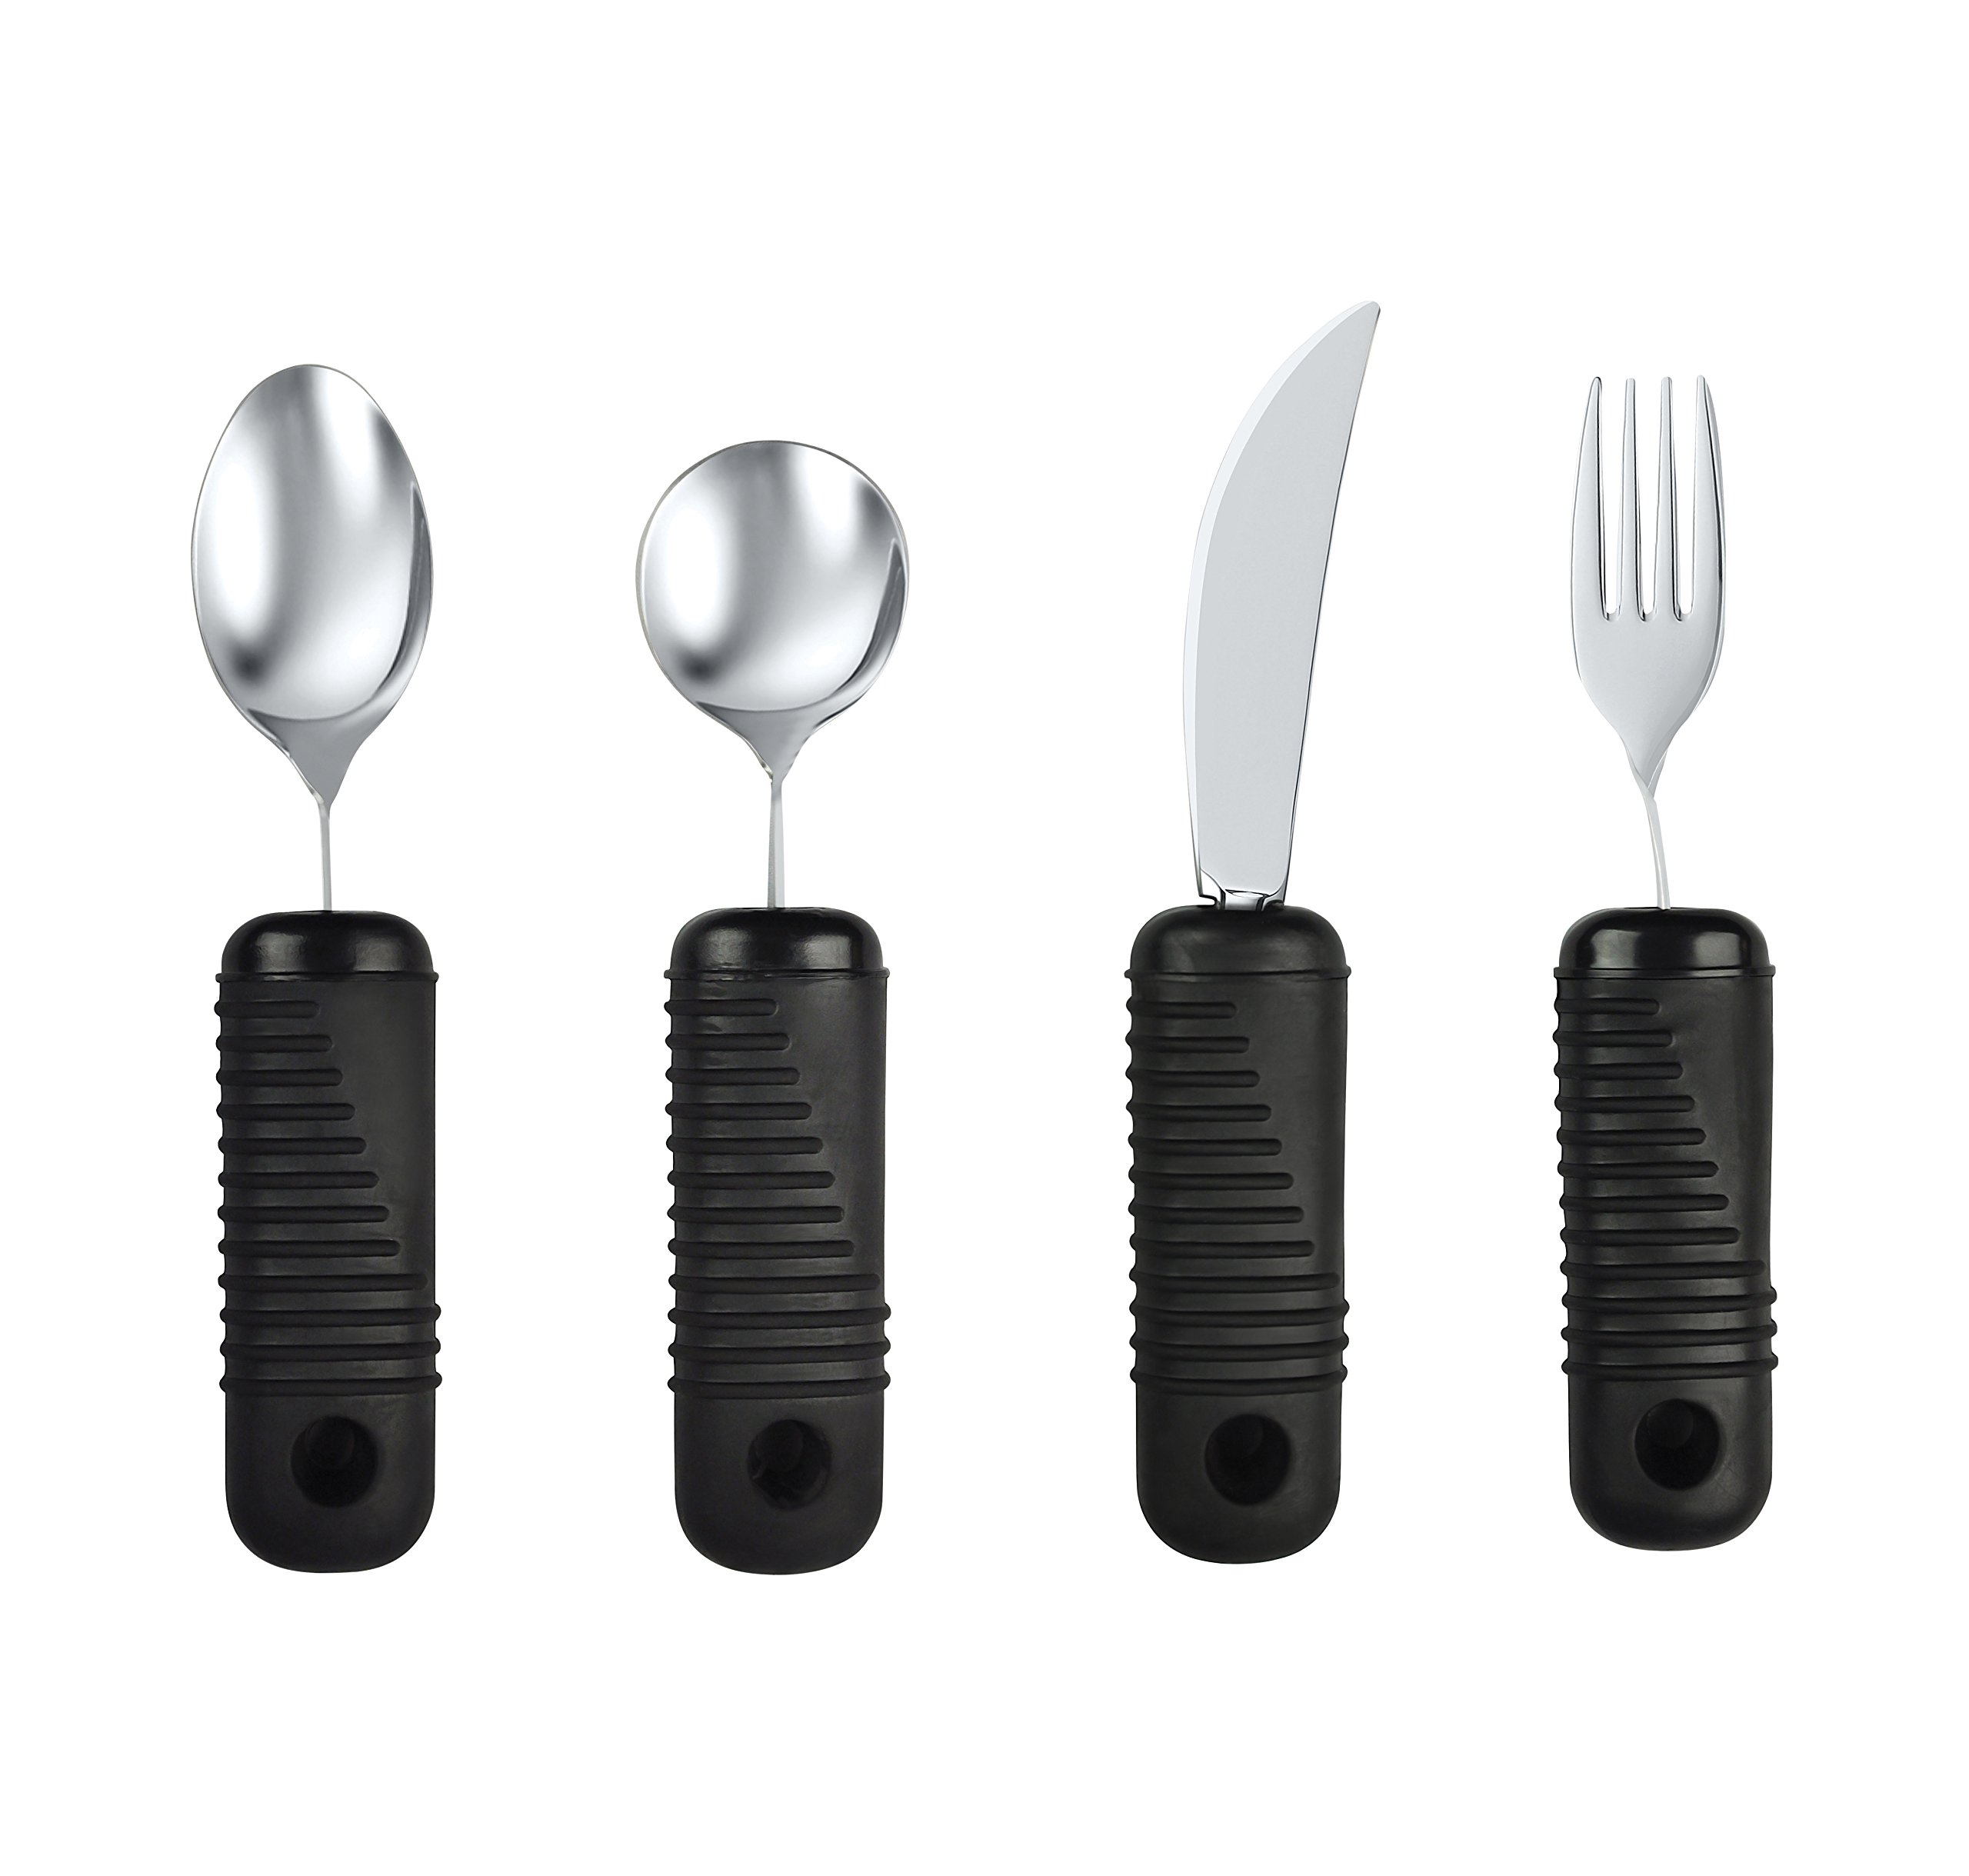 Blue Jay Make Eating Easier Big Grip Utensil Set - Arthritis Aid Silverware Set, 1.5in Ribbed Made with Ribbed Rubber Handles and Stainless Steel, for Weak Grip, Latex-Free, Eating AIDS